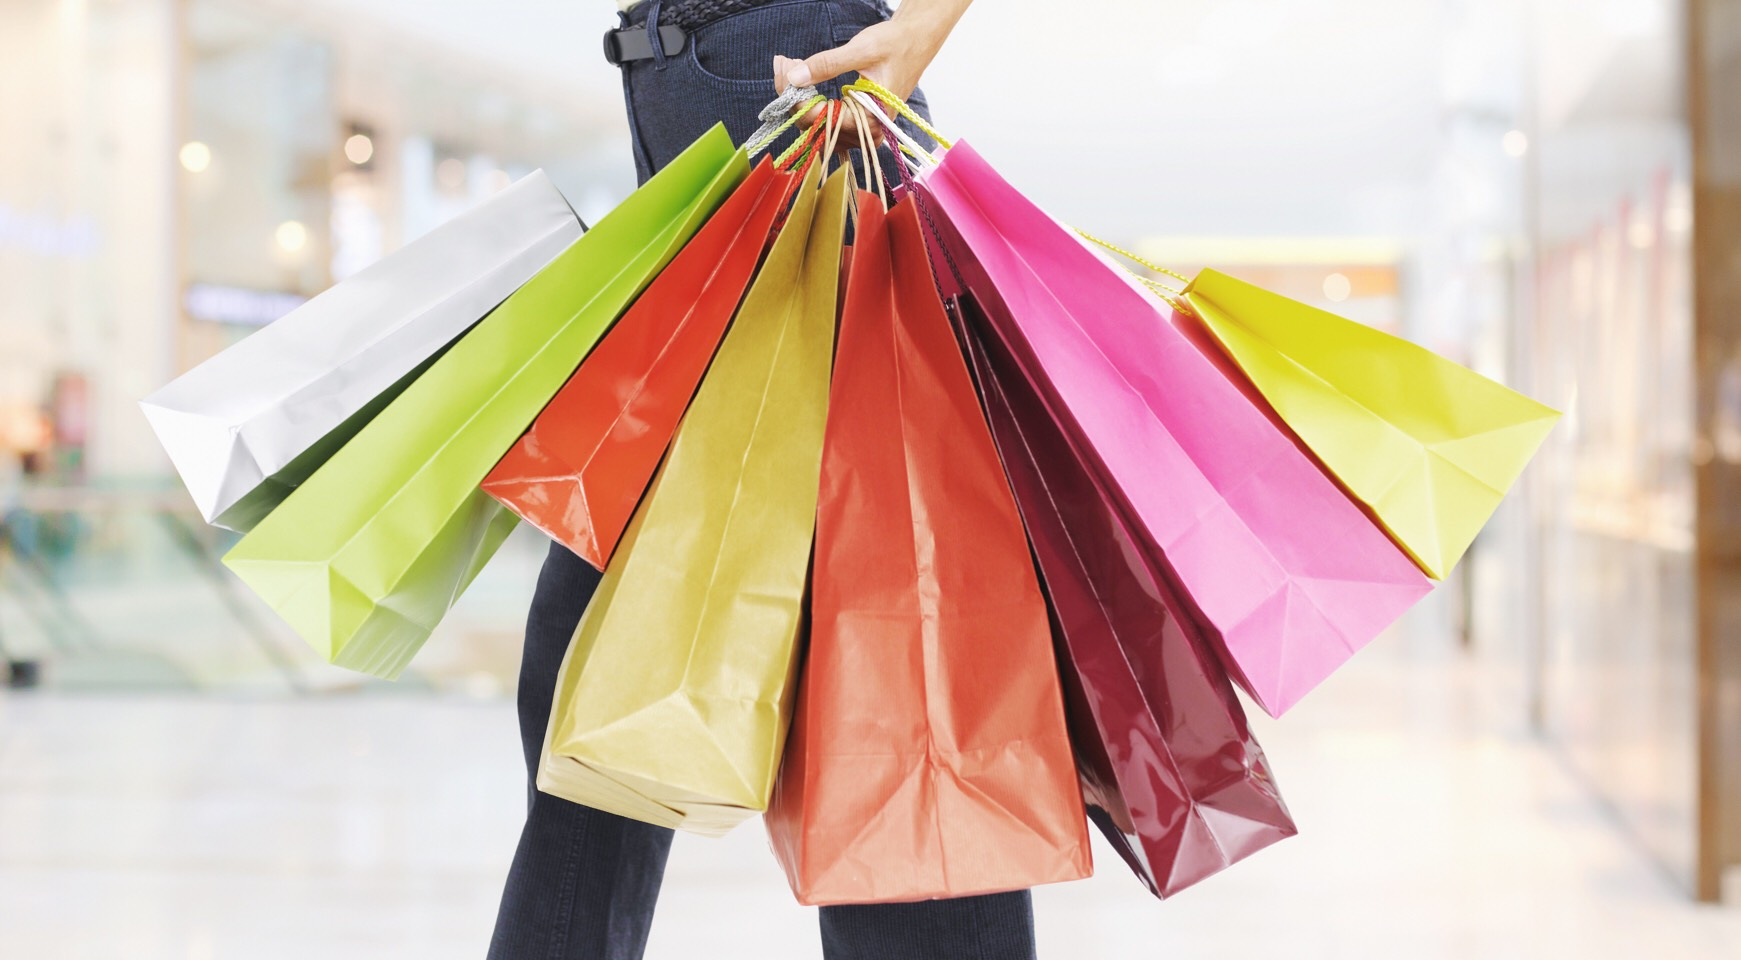 Look for an outlet mall to go to first (they're usually cheaper). Figure out what you really need to buy. The day before you go out, try on all your clothes, and take note of what you don't have a lot of and really need. Make a list, check it twice - you are your own Santa Clause this summer.